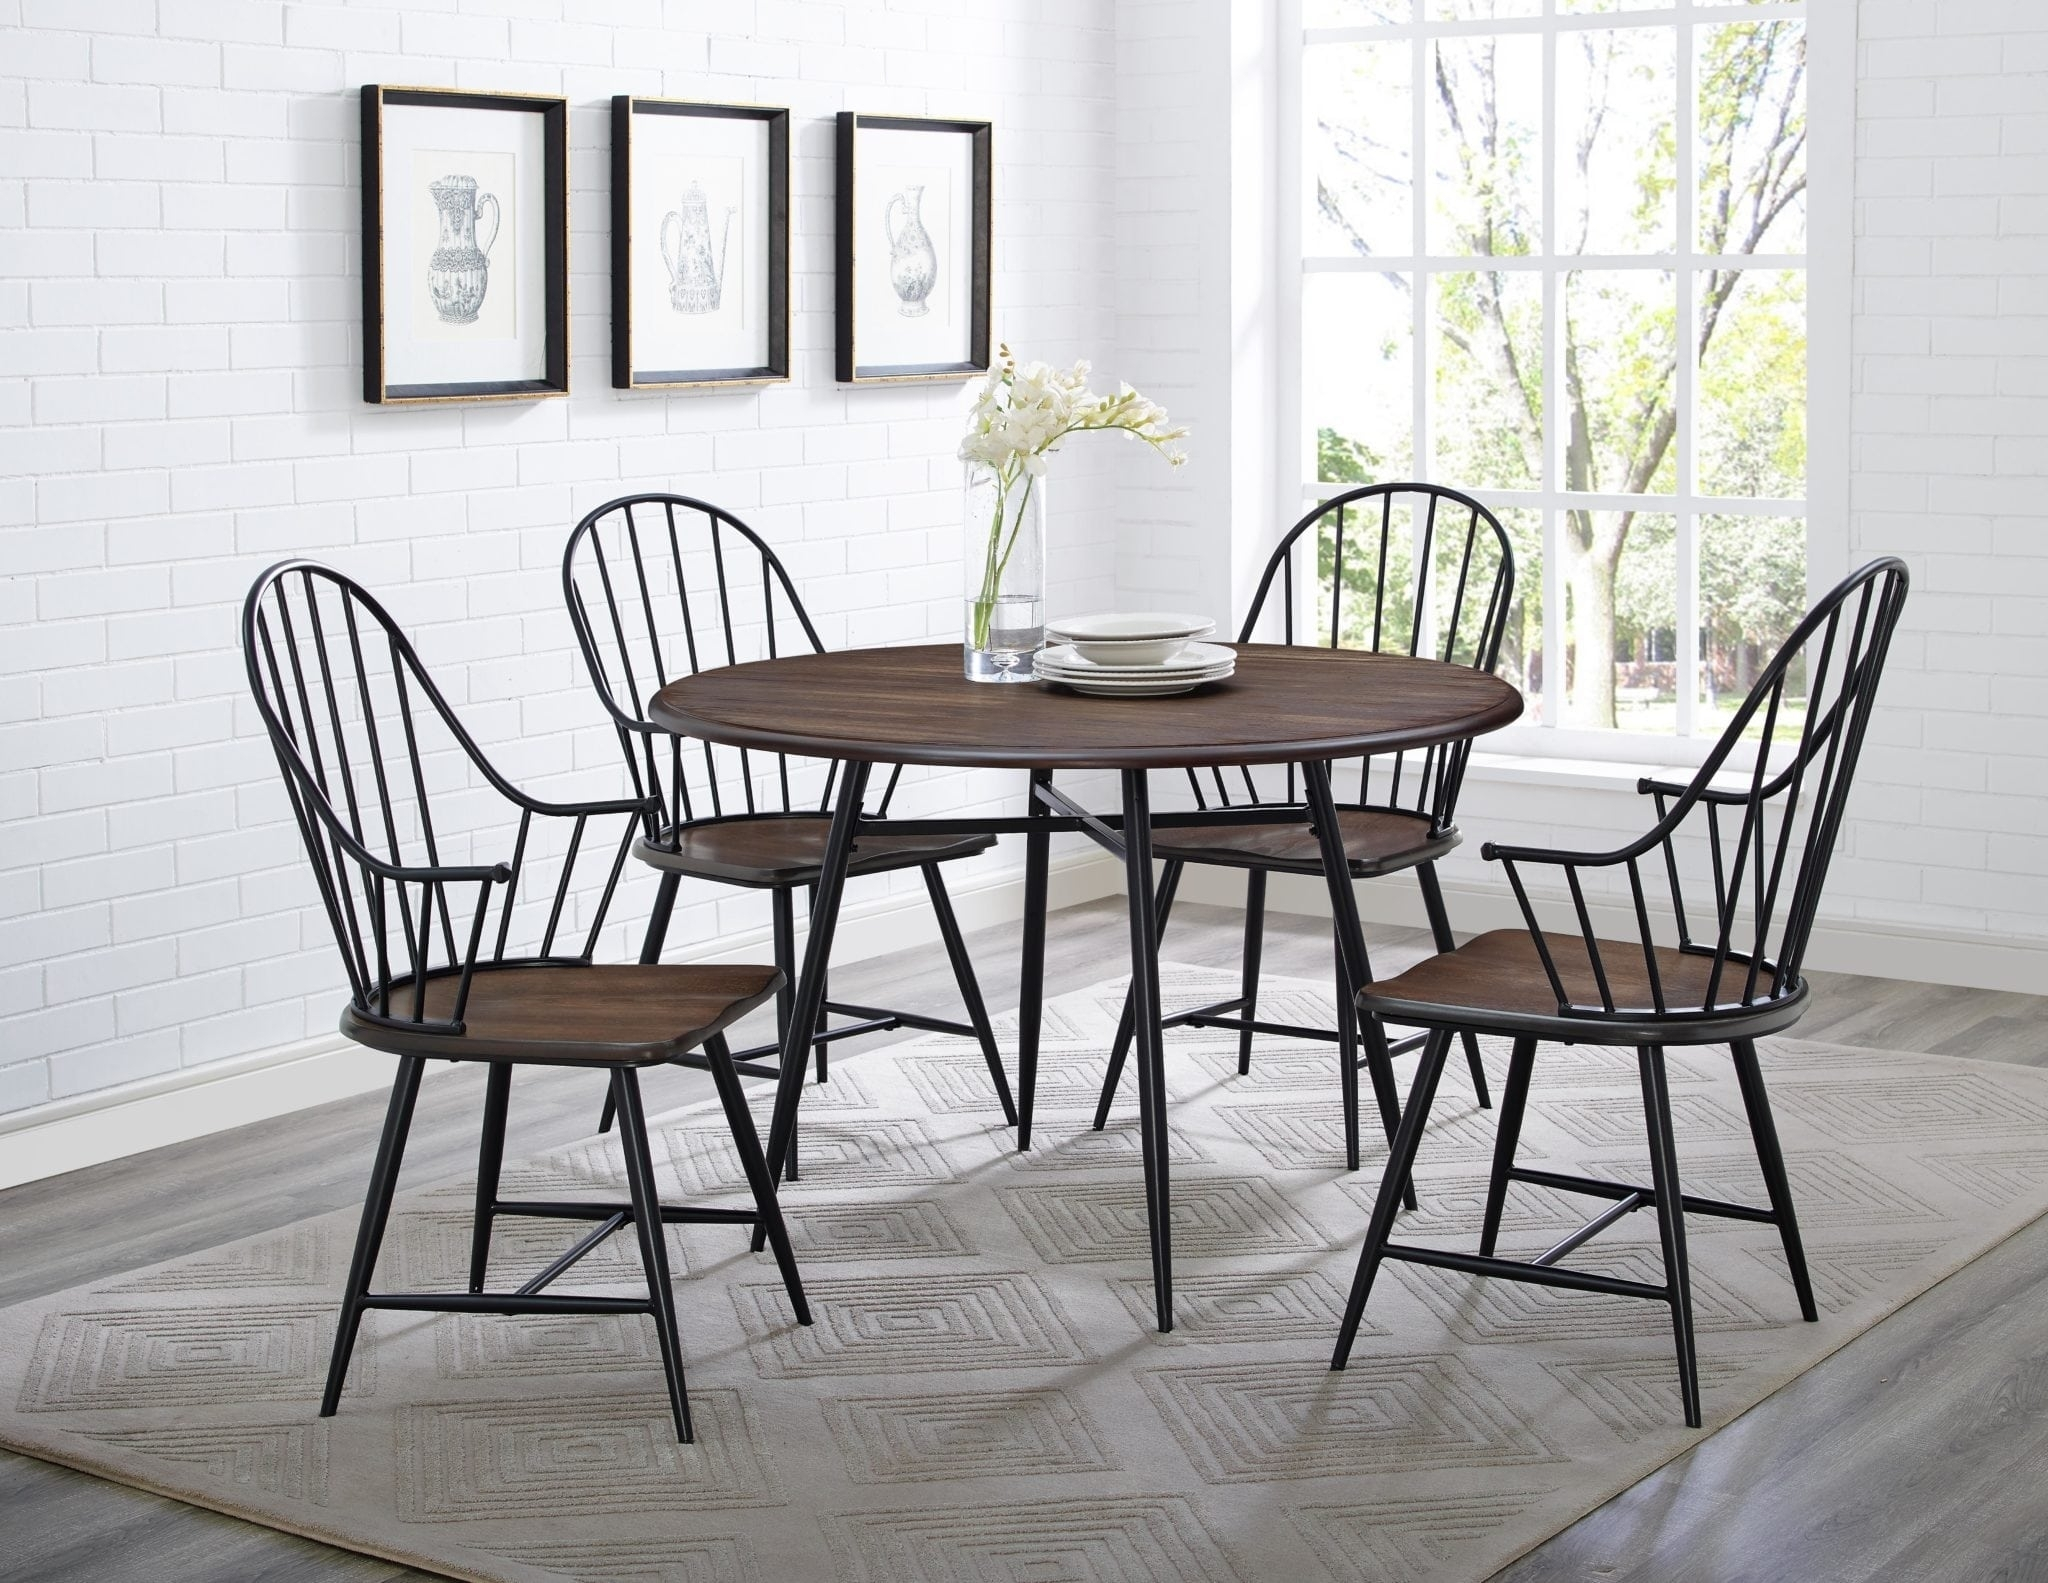 Bernards | Davis Home Furniture – Asheville, Canton & Waynesville, Nc With Current Jaxon 5 Piece Extension Round Dining Sets With Wood Chairs (Image 5 of 20)